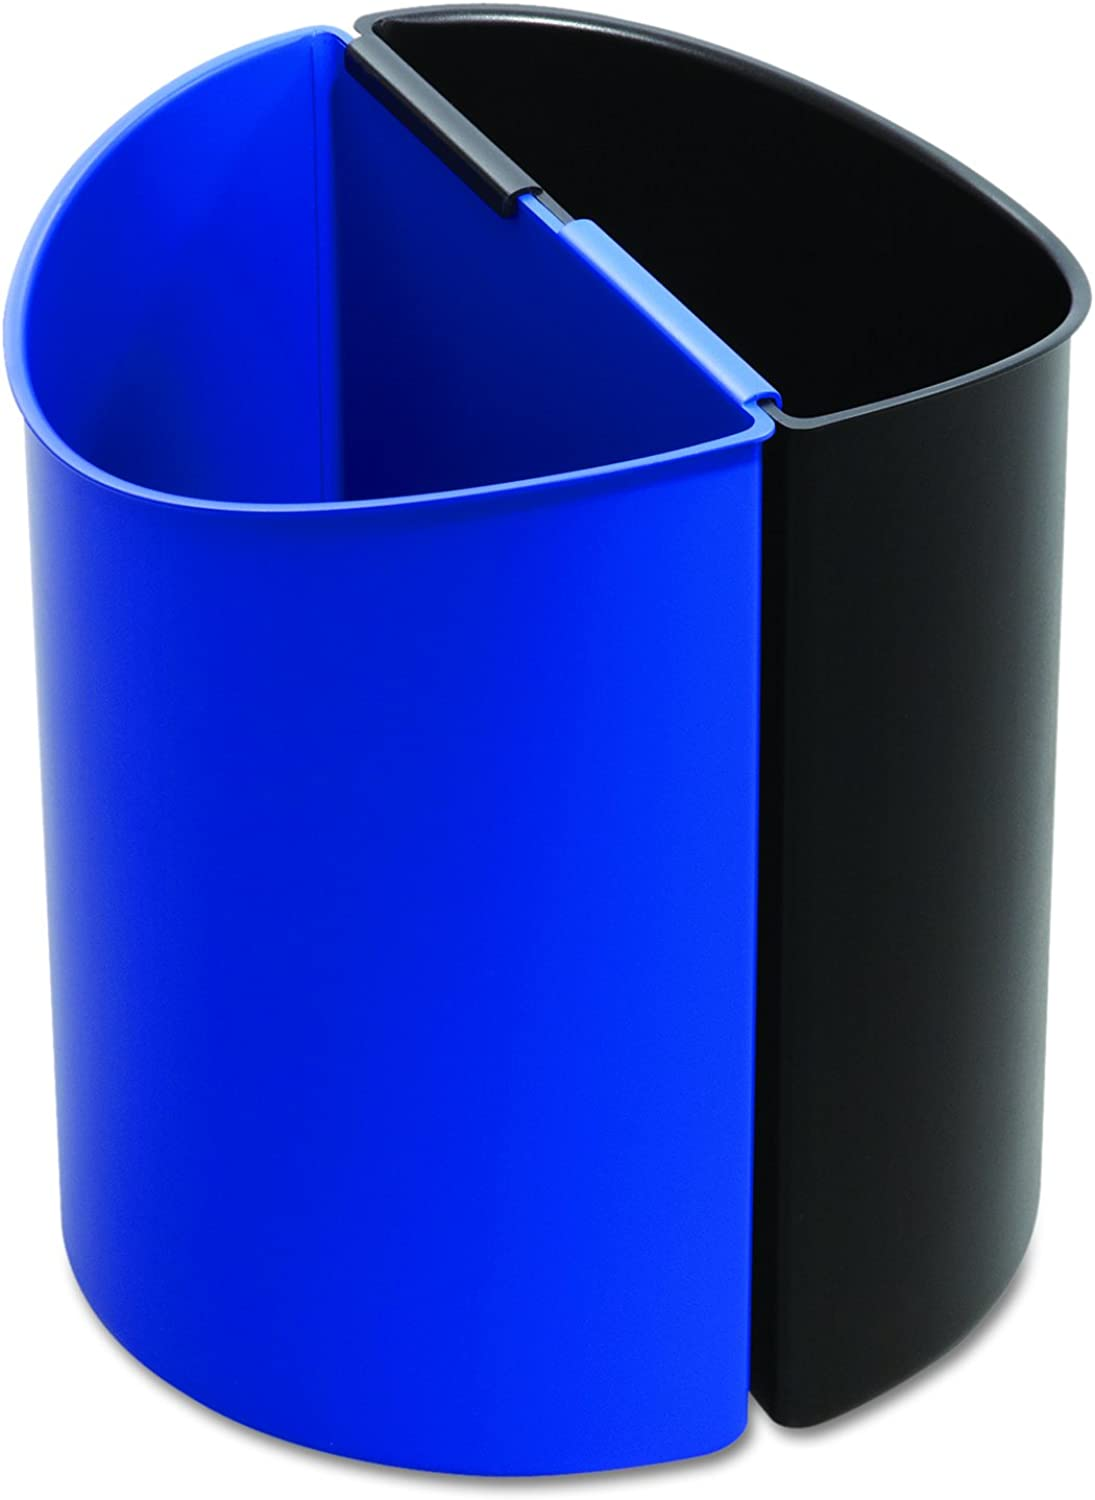 DESK-SIDE RECYCLING RECEPTACLE, 7GAL, schwarz AND Blau B006K0VOL8 | Offizielle Webseite